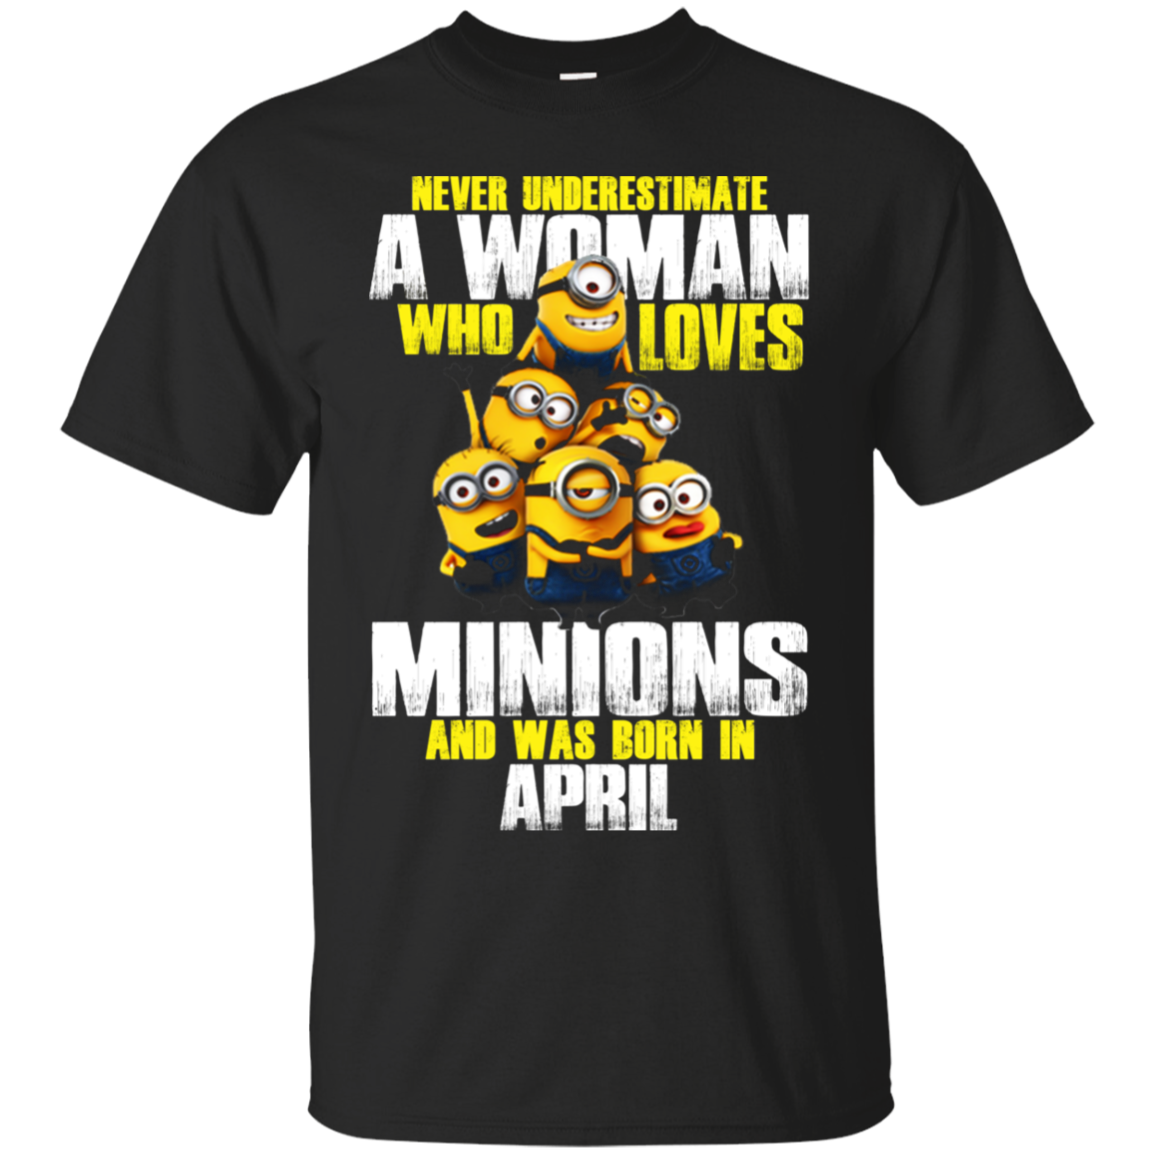 Never Underestimate A Woman Who Loves Minions And Was Born In April T Shirt - Poppy Store